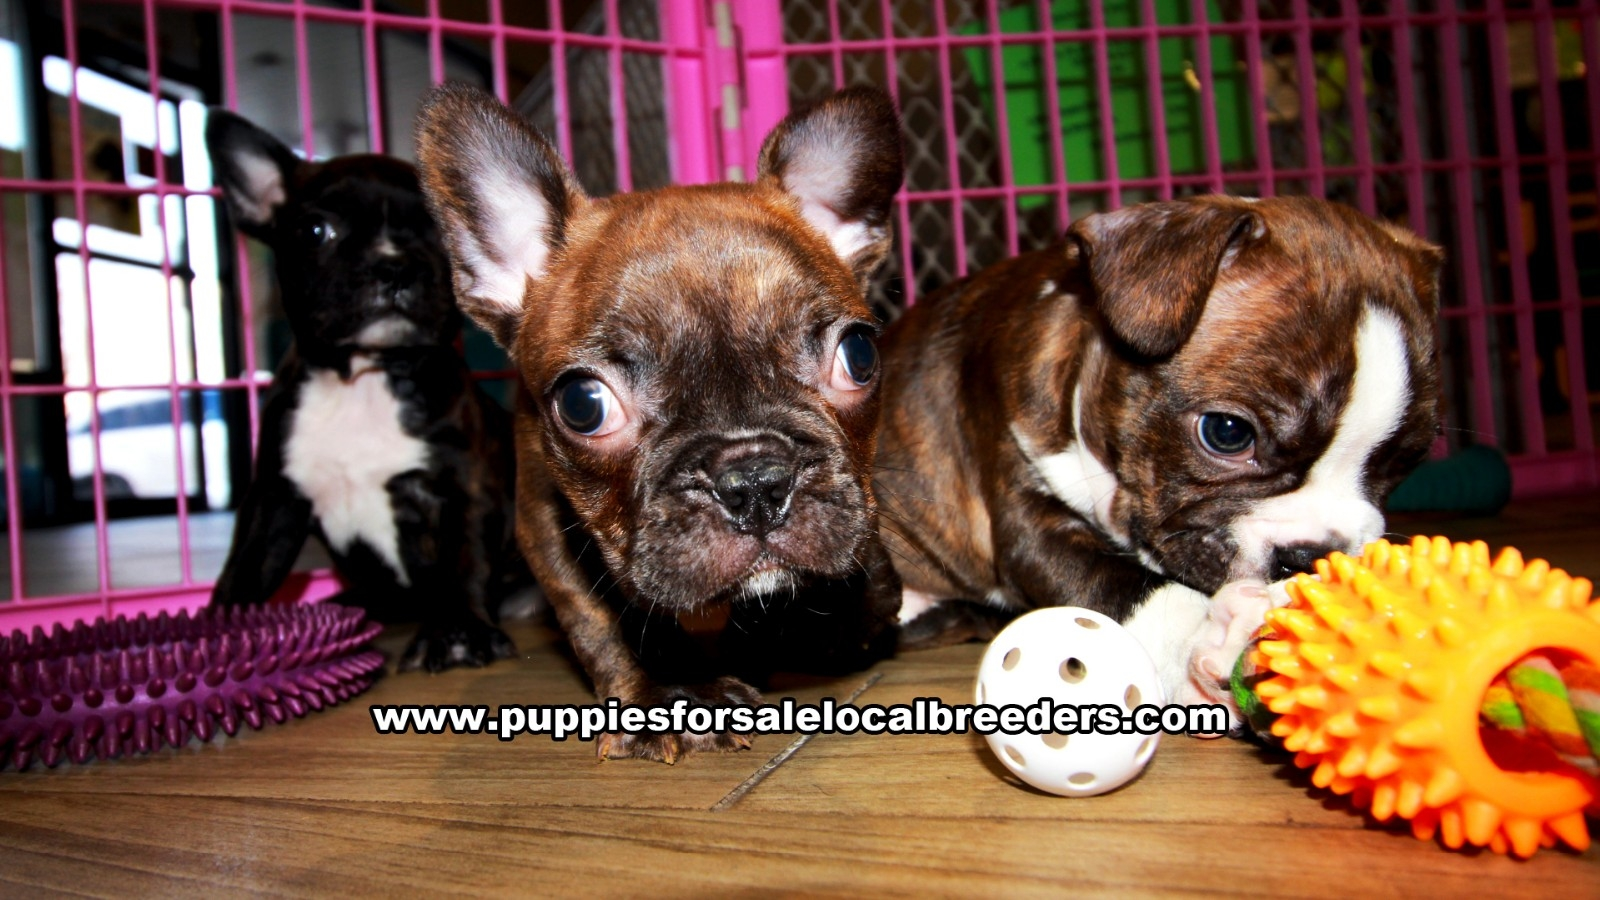 Brindle Frenchton, Puppies For Sale In Georgia, Local Breeders, Near Atlanta, Ga